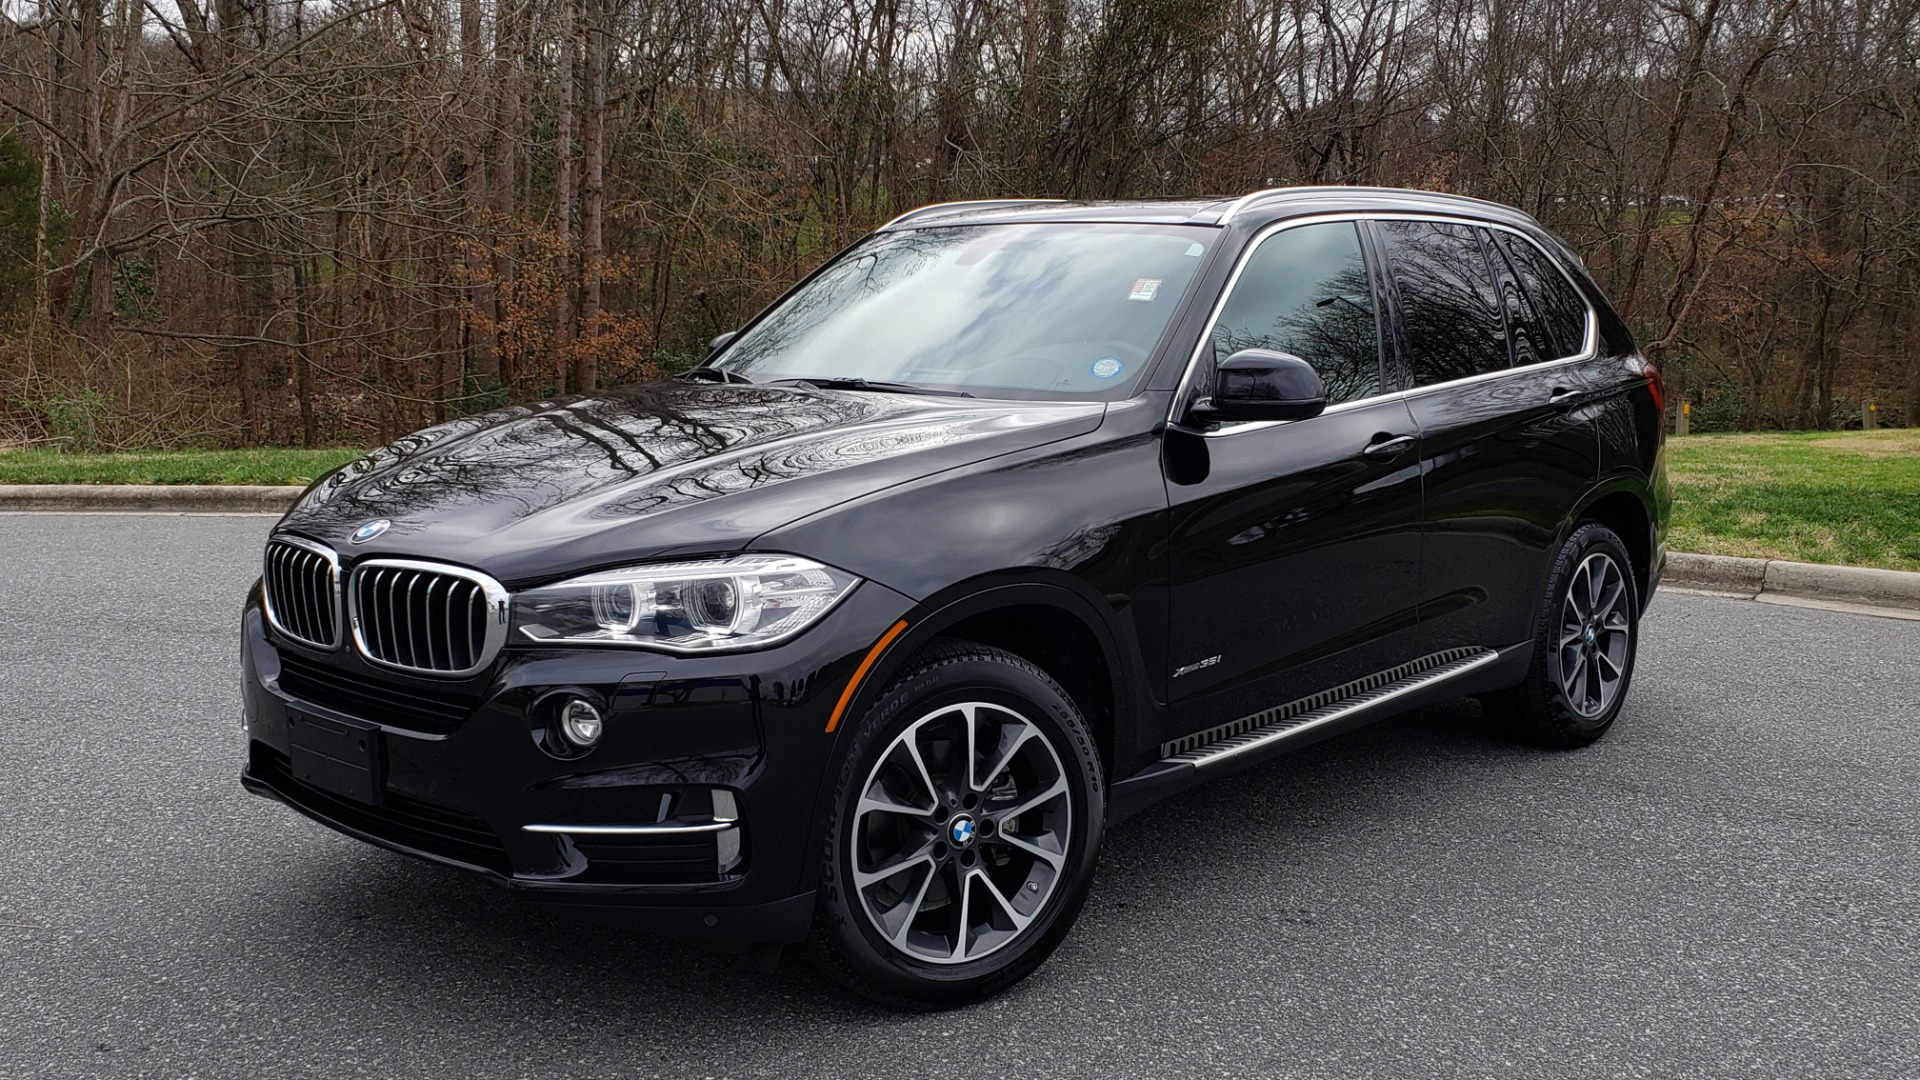 Used 2017 BMW X5 XDRIVE35I / PREM LUX PKG / DRVR ASST / CLD WTHR / APPLE CAR PLAY for sale Sold at Formula Imports in Charlotte NC 28227 1